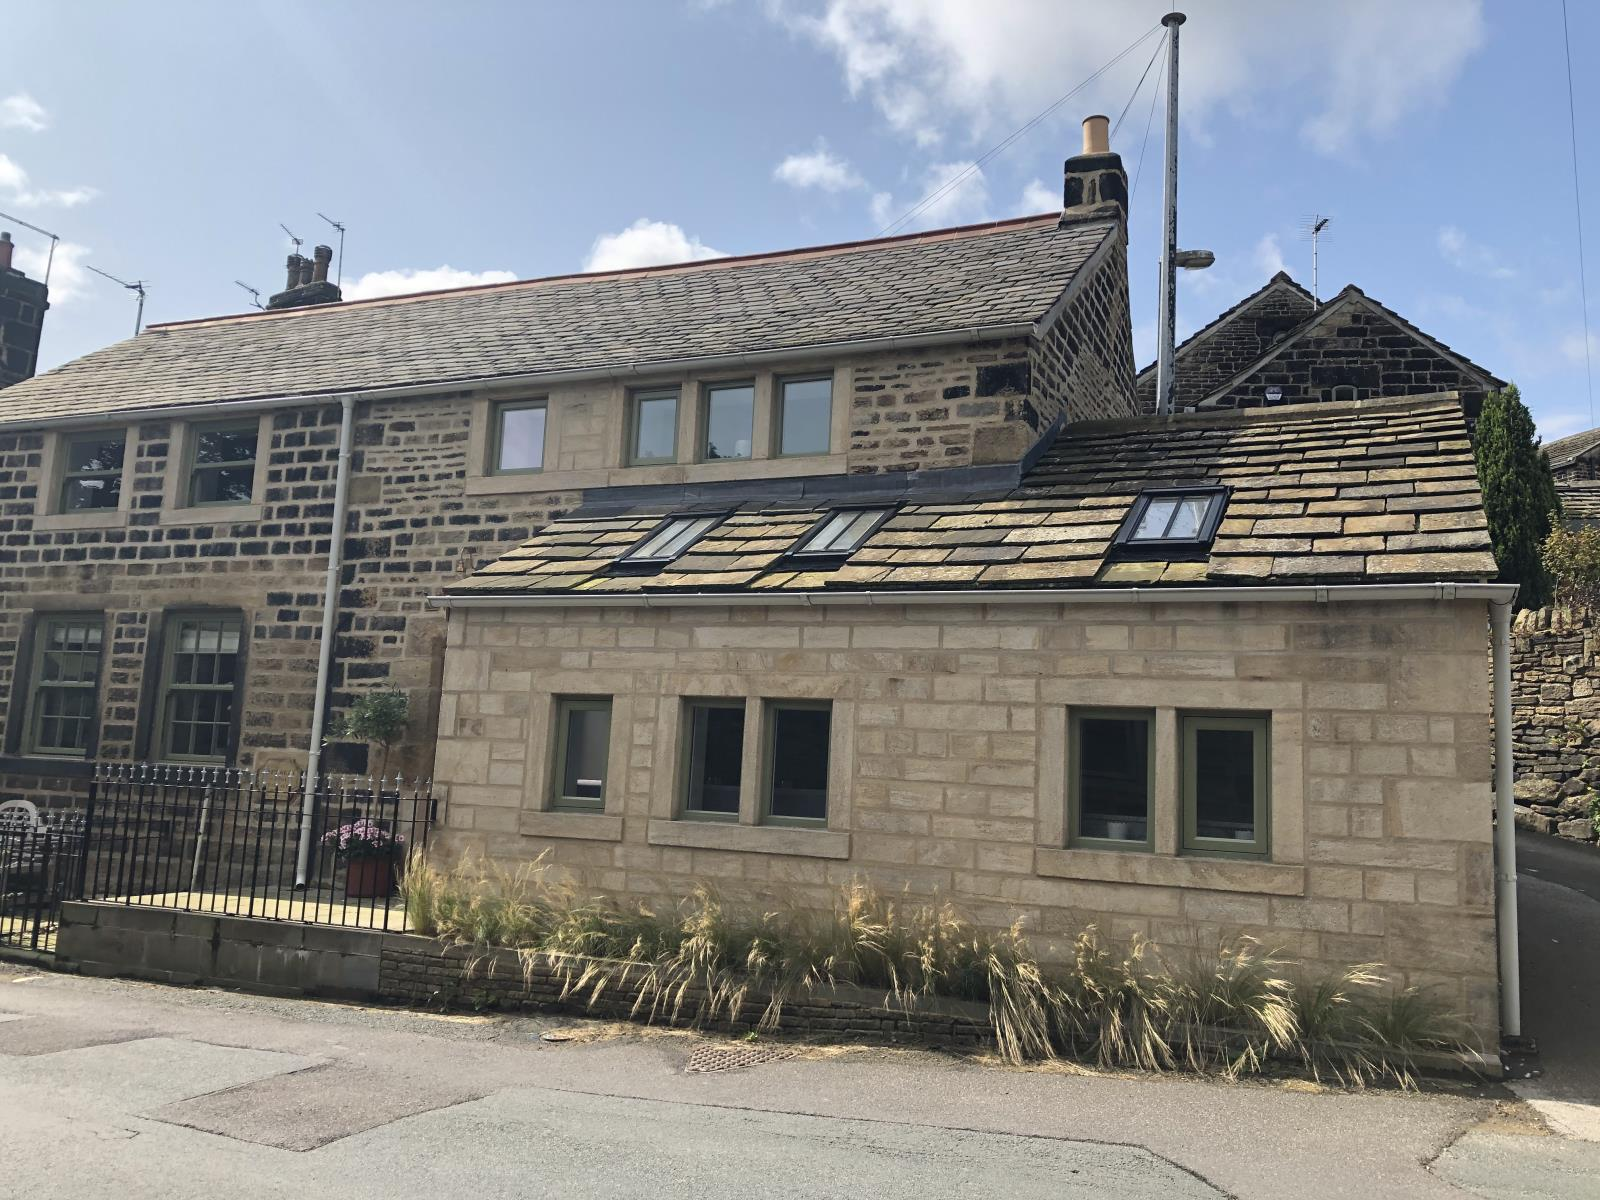 School Cottage, 56 Towngate, Hepworth, HD9 1TE